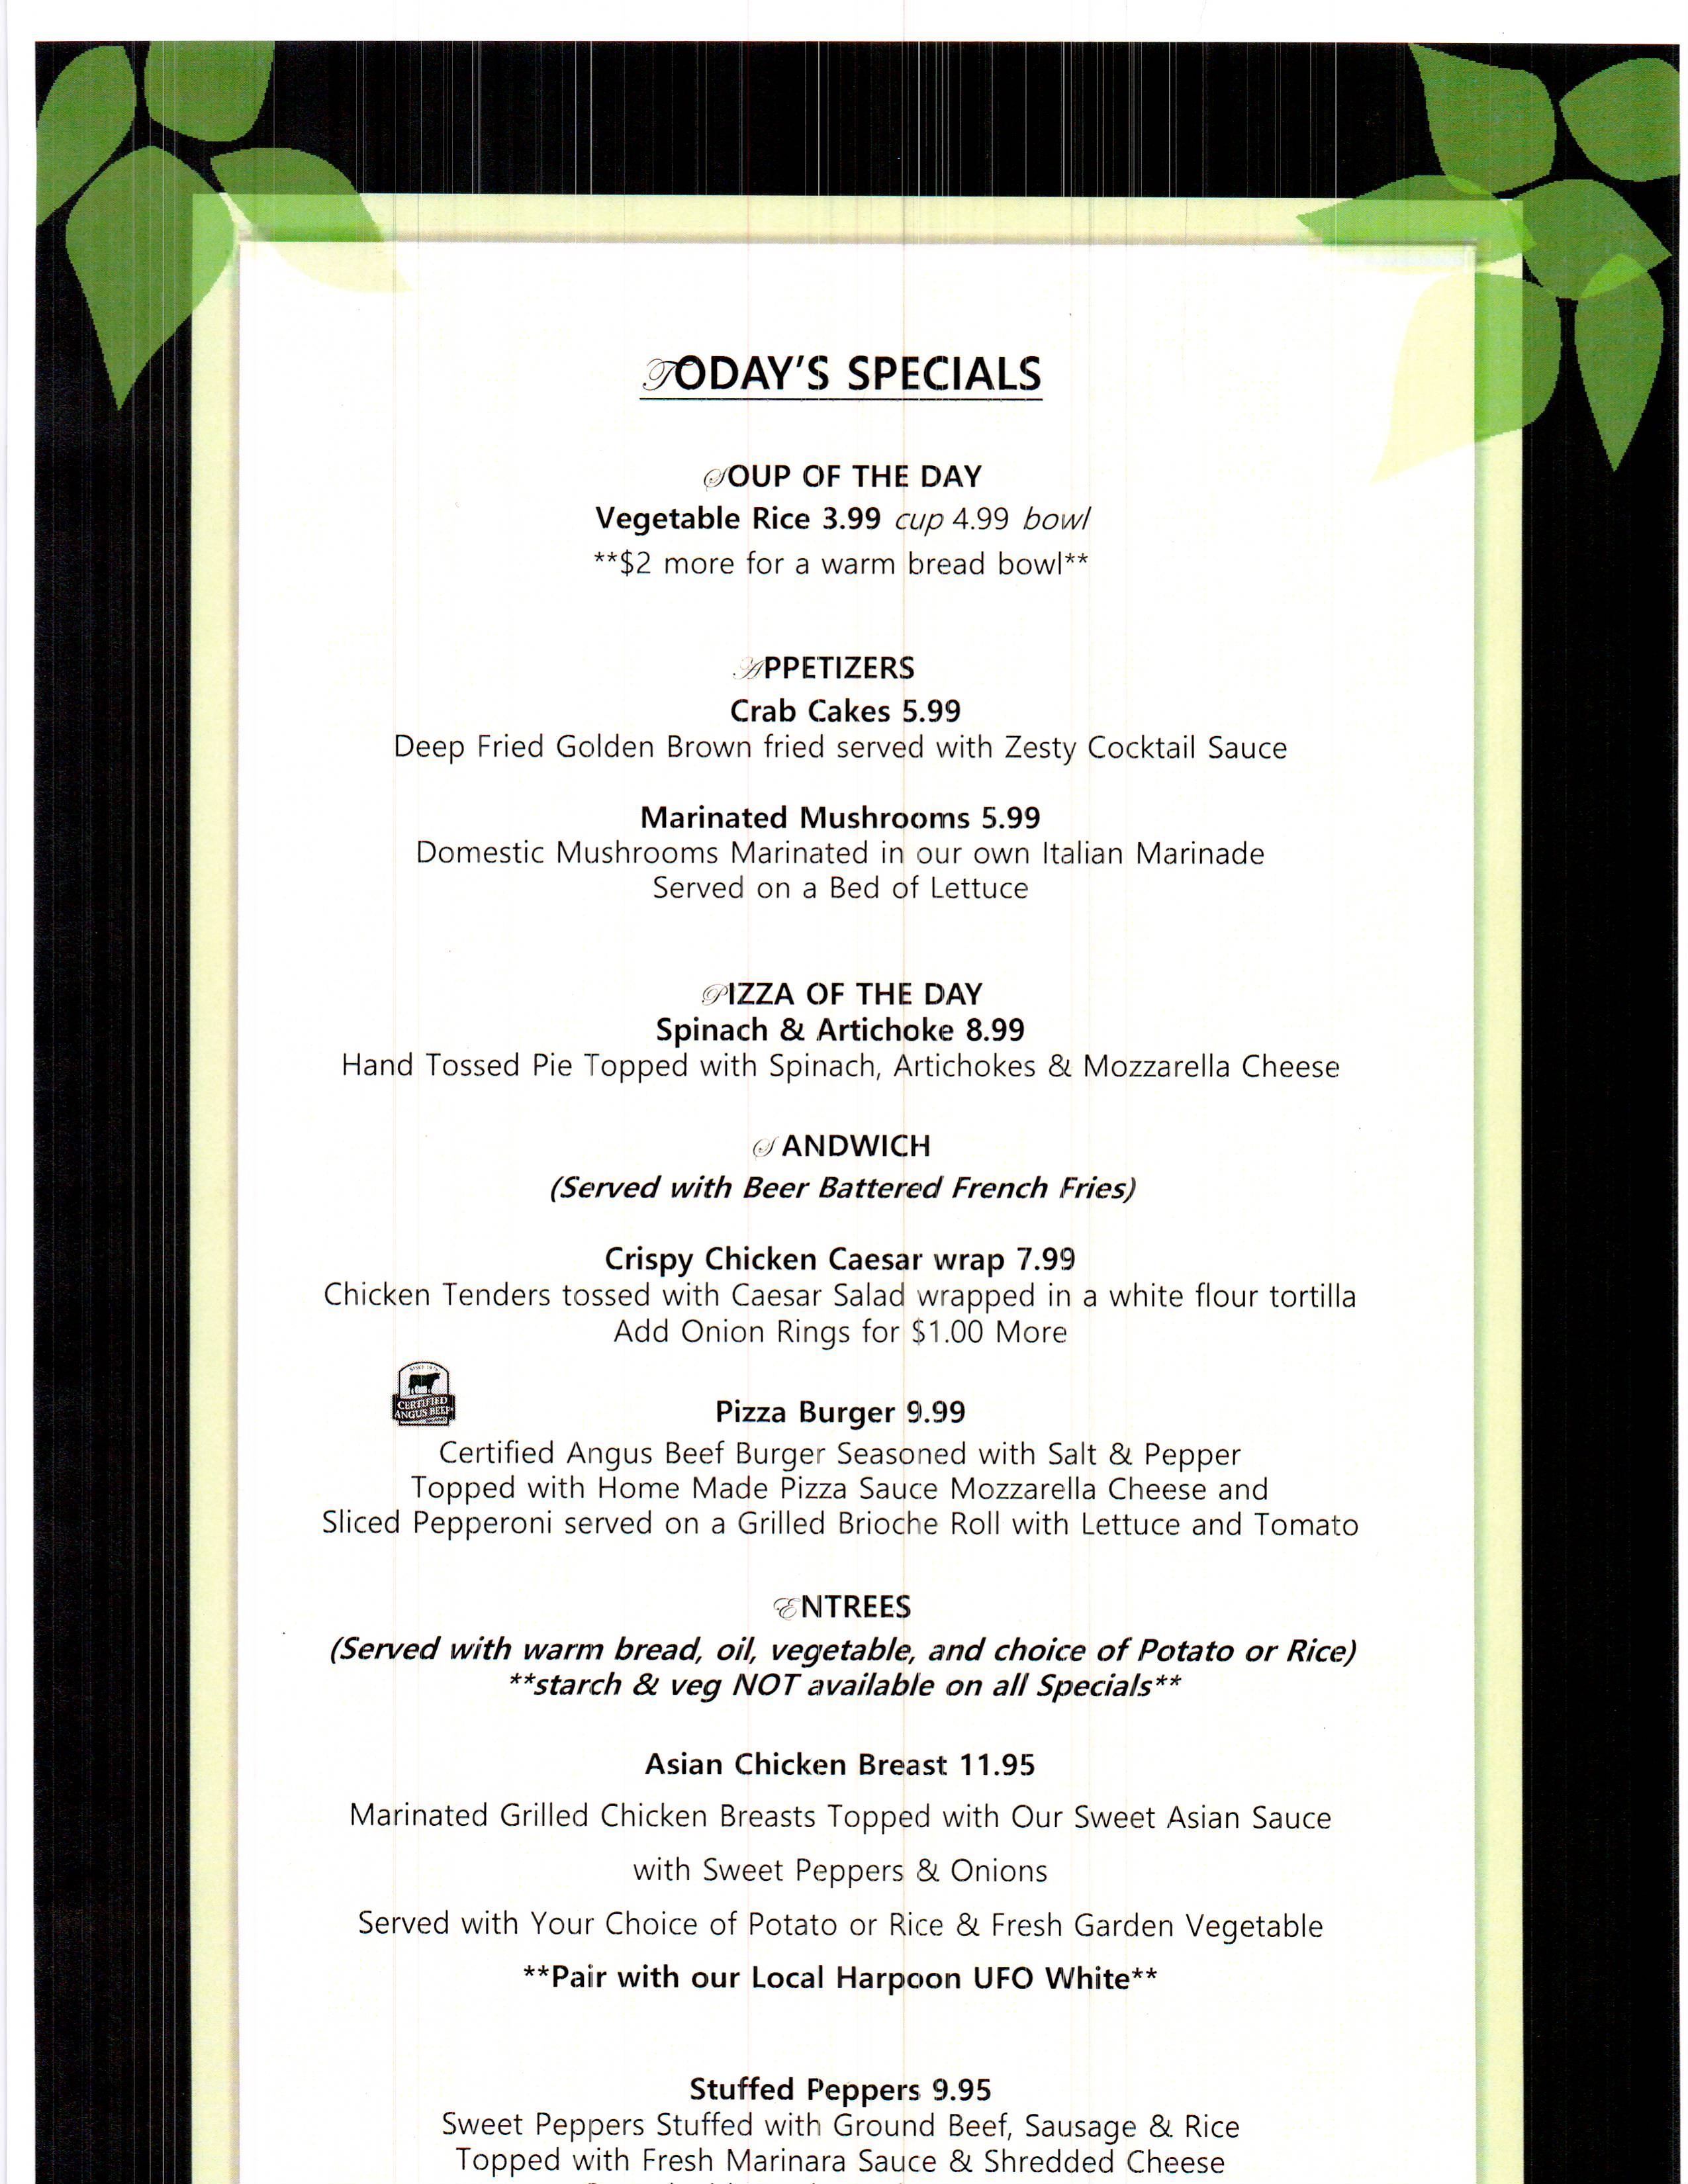 Weekly Specials - Fireside Inn & Suites - West Lebanon, New Hampshire